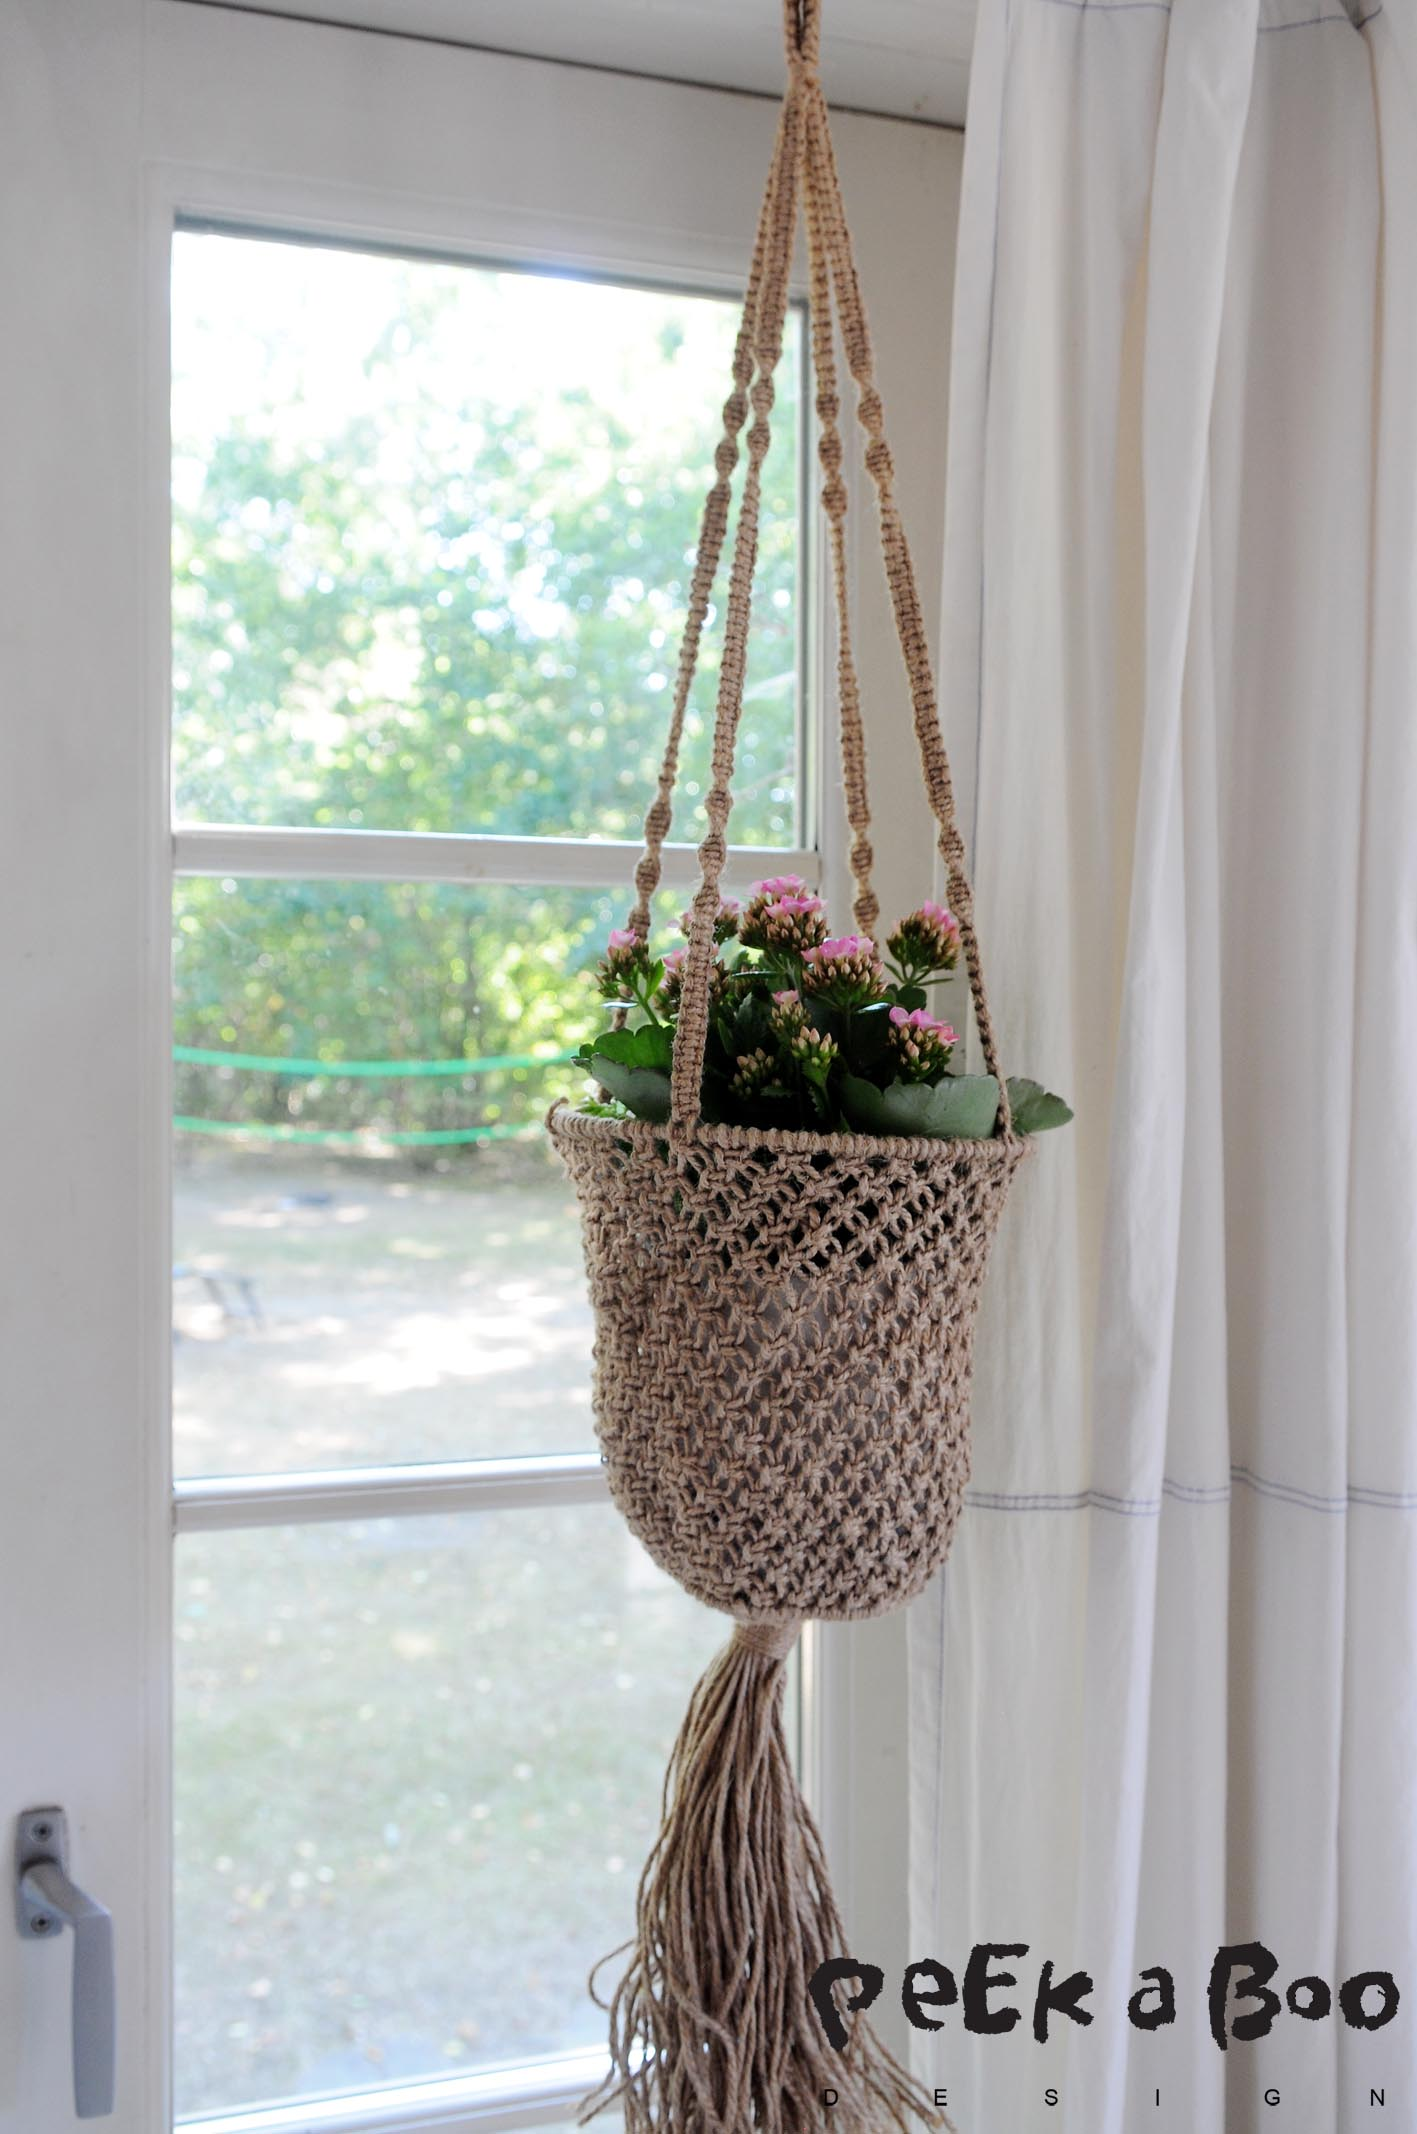 This pretty 70'ies style macrame hanger was found at a fleahmarket a coupe of days ago....I find the mix with the colourful kalanchoe perfect. What do you think ?